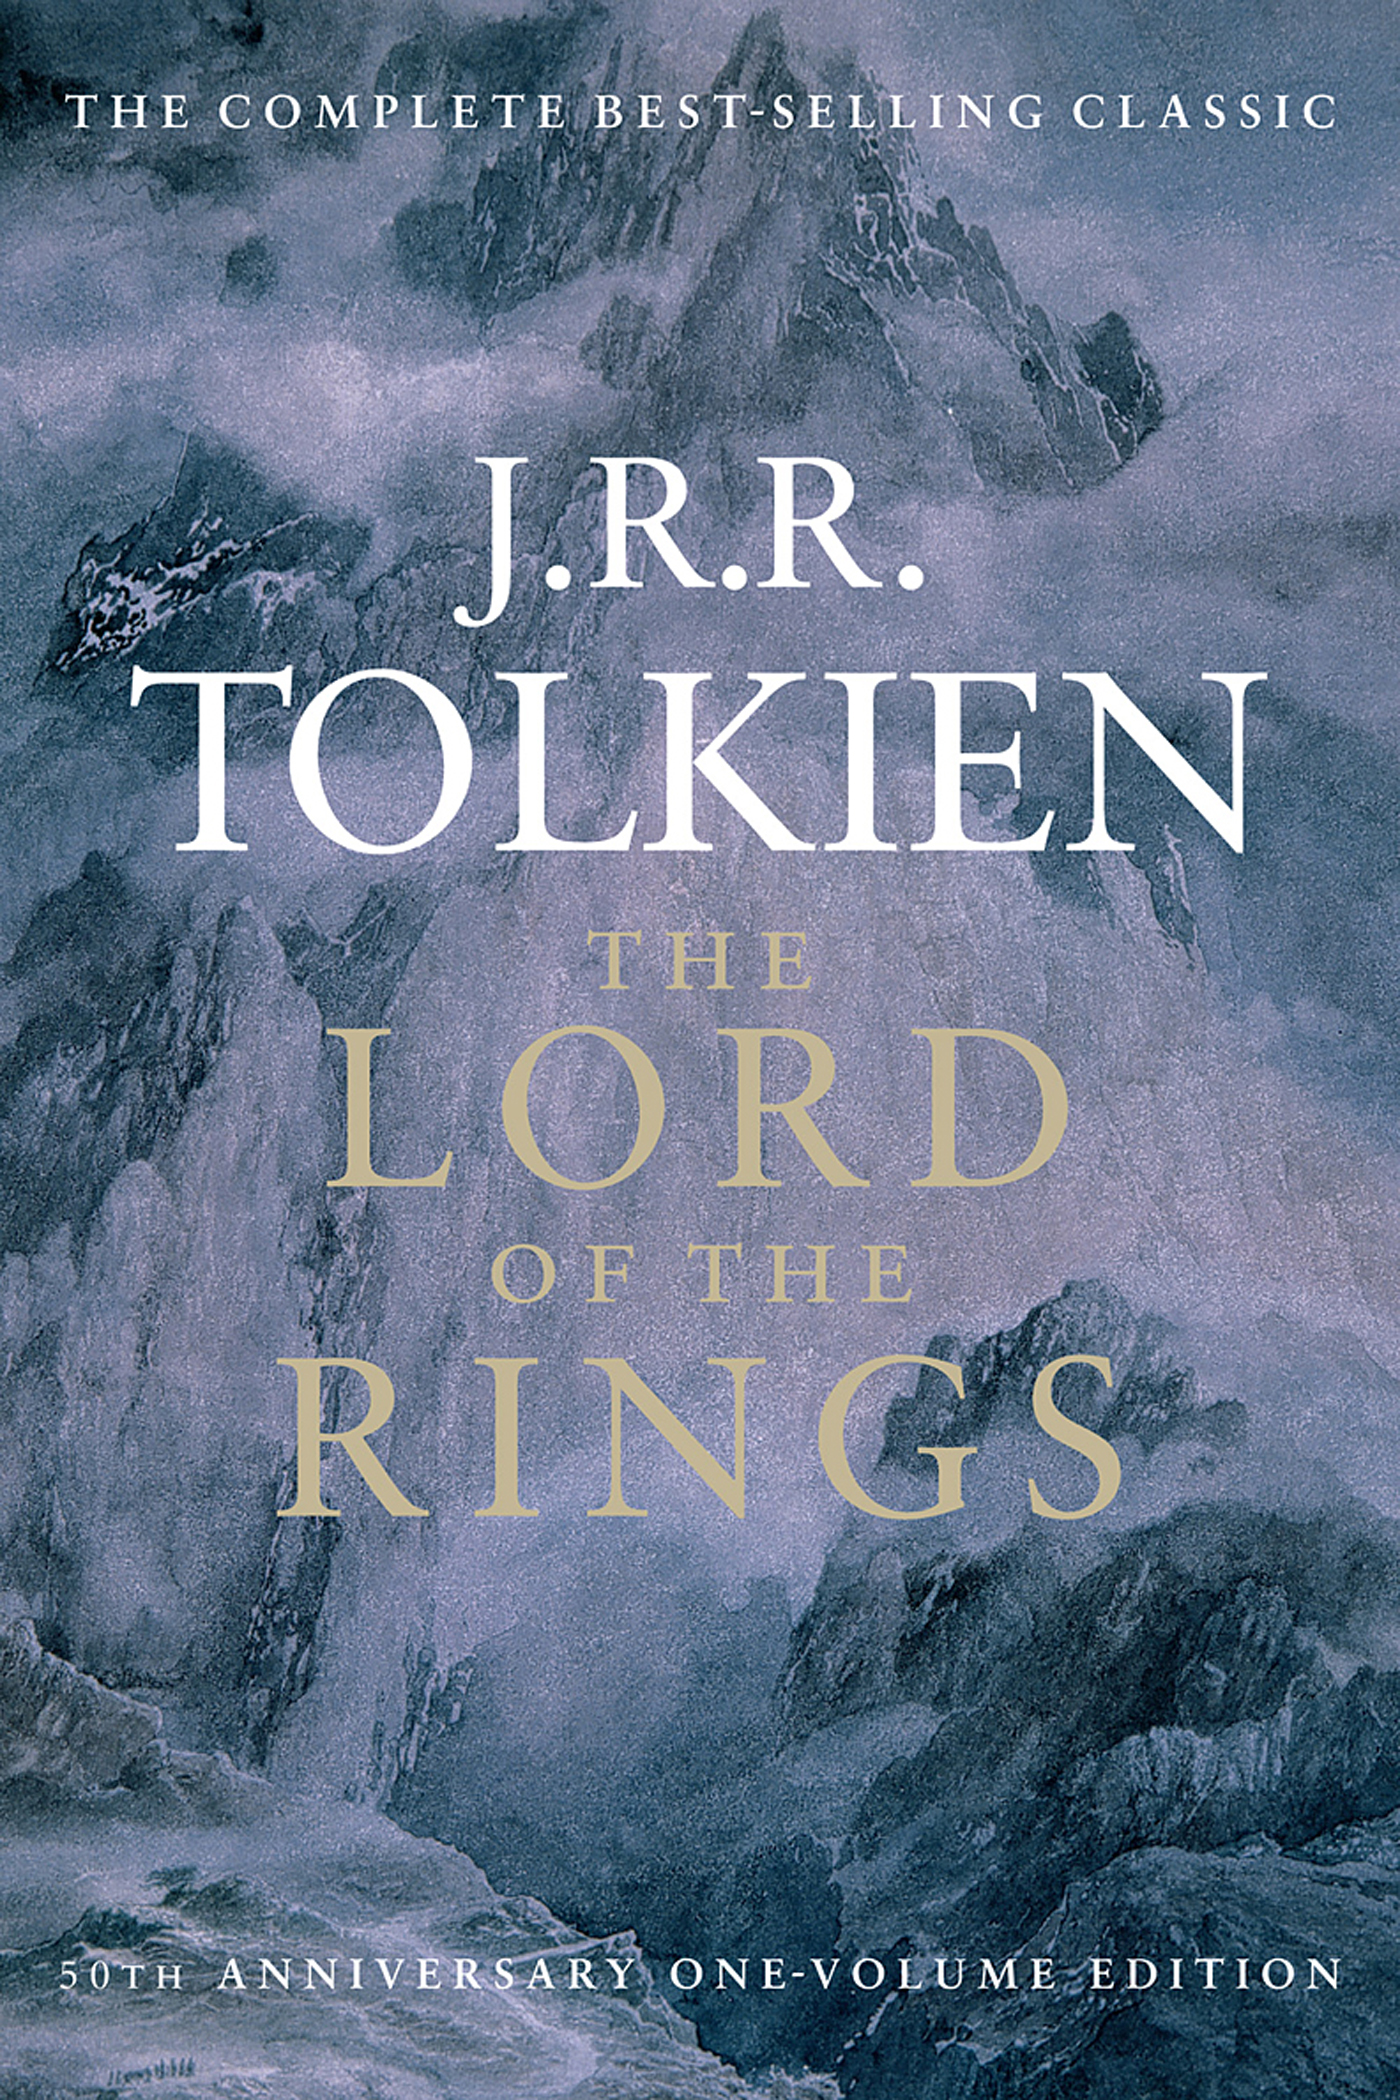 The Lord of the Rings By: J.R.R. Tolkien